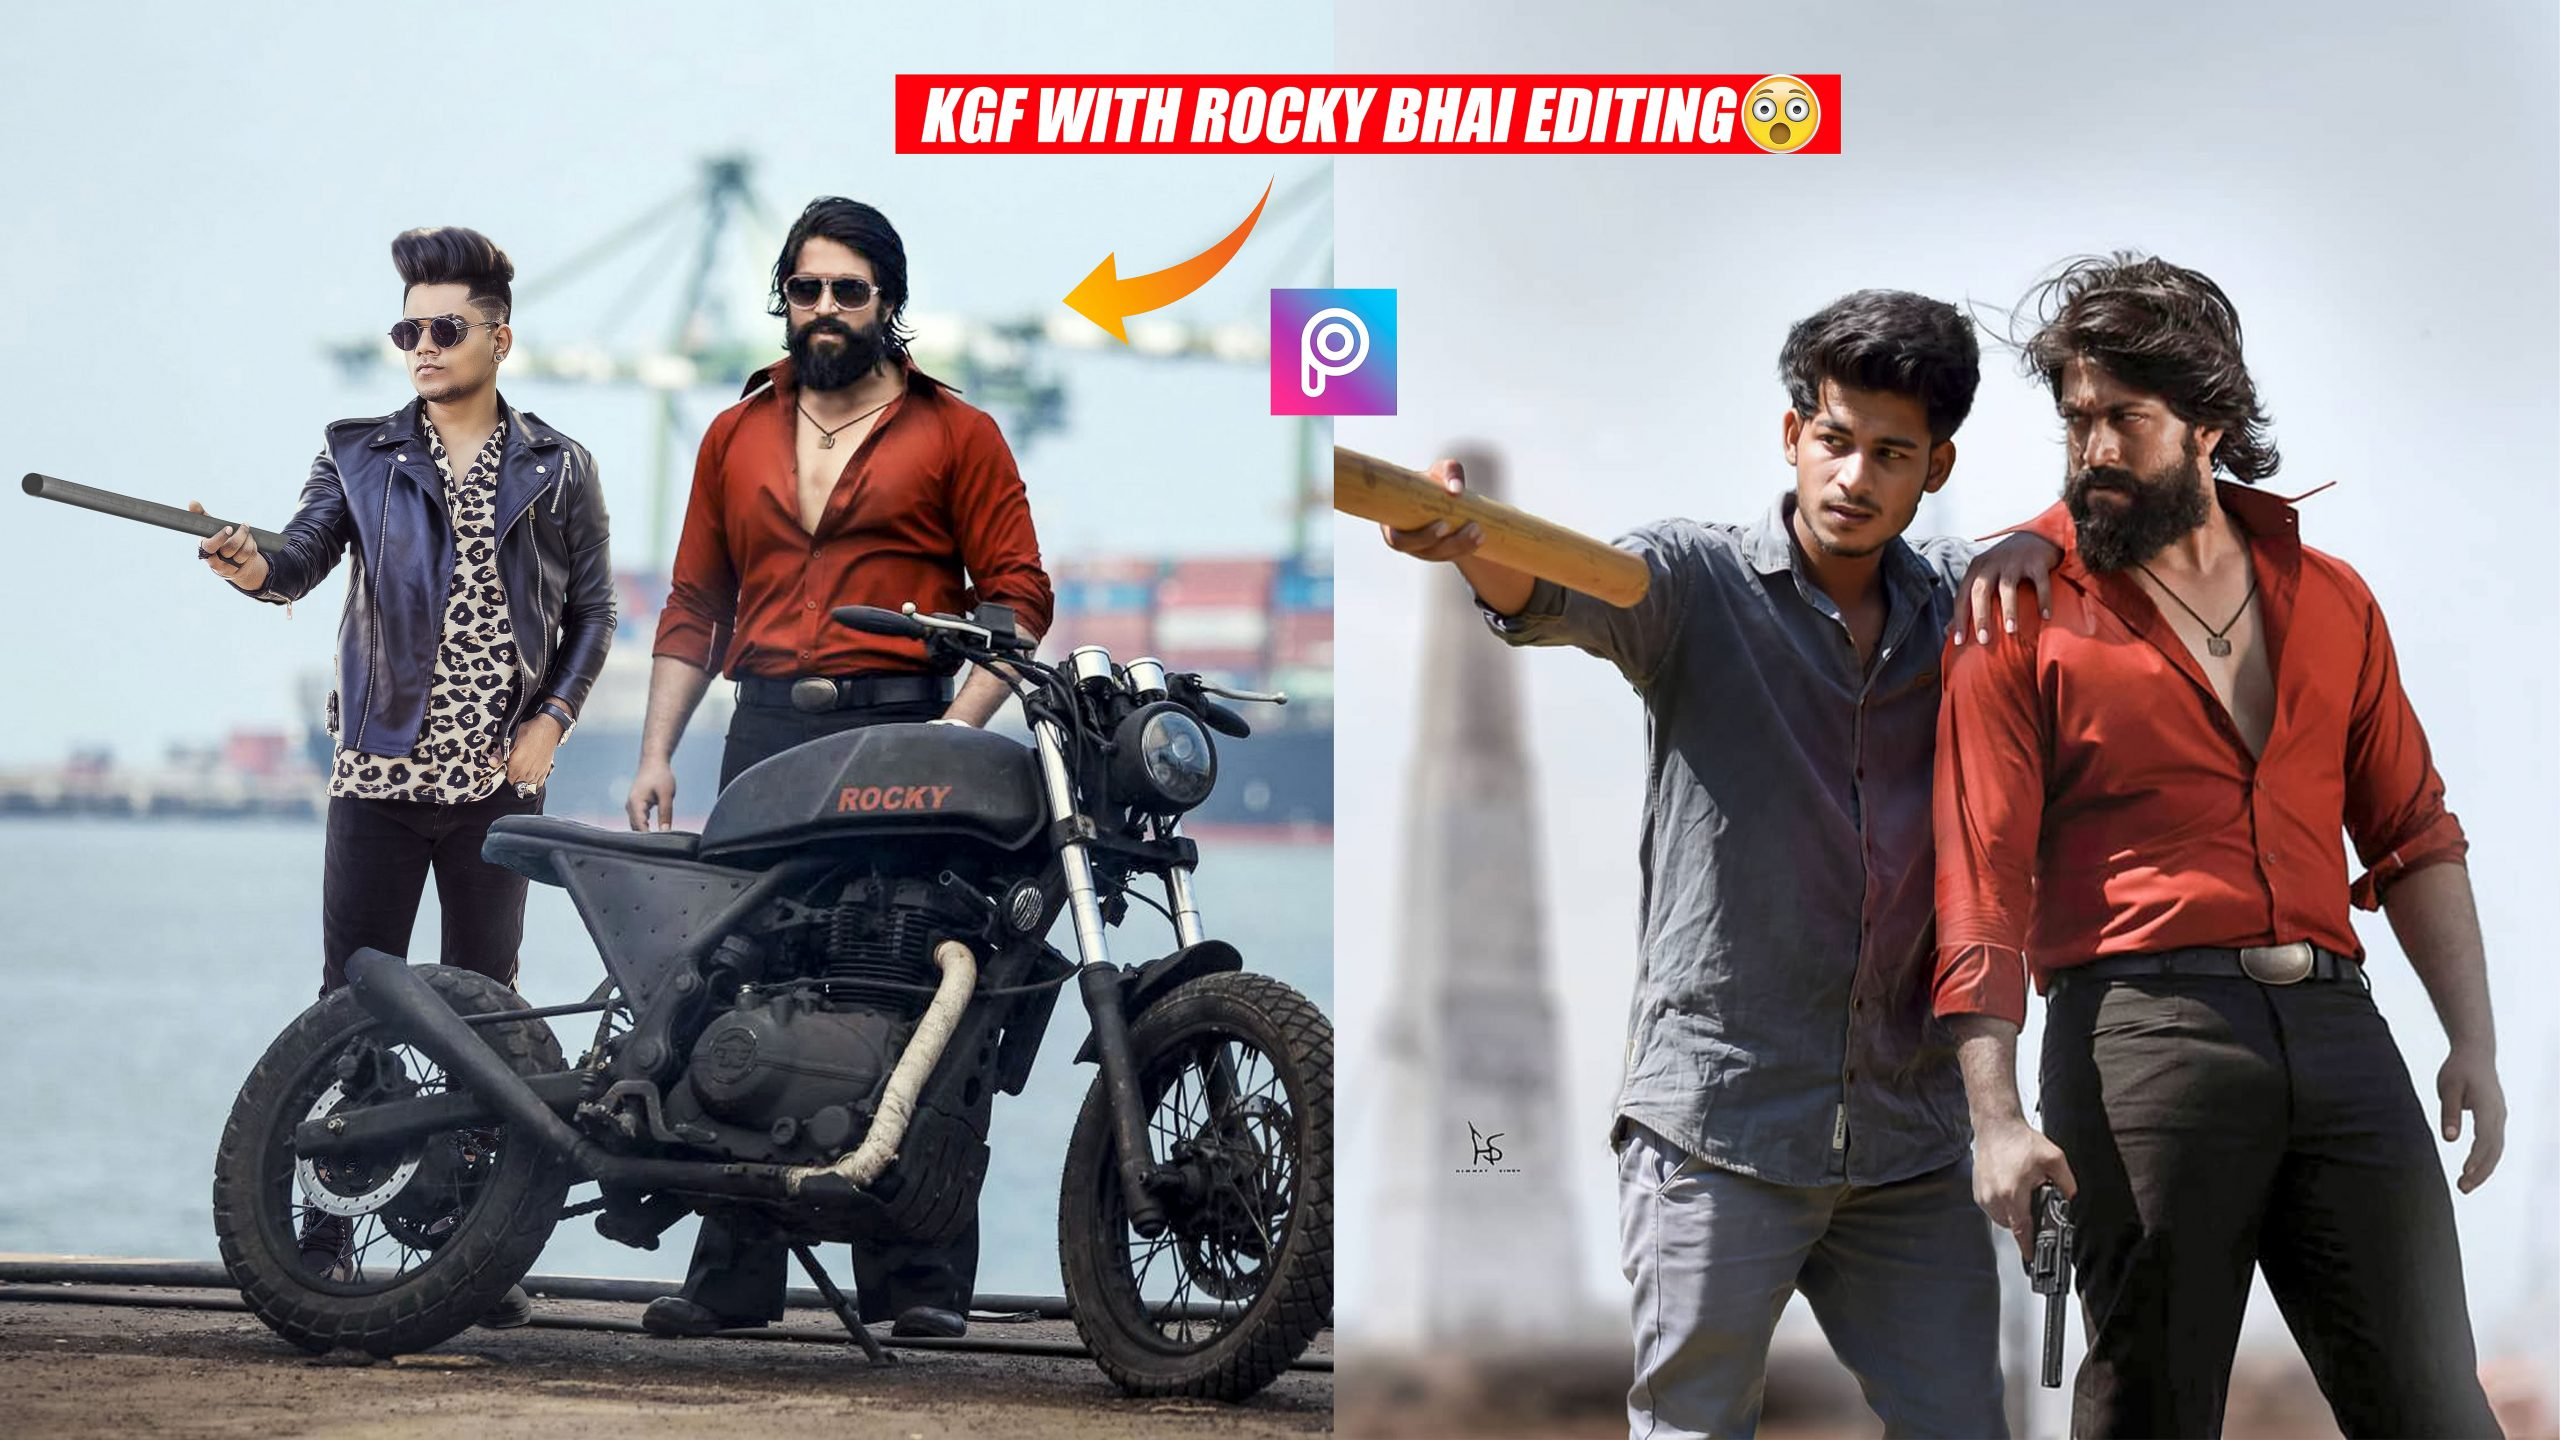 K G F Rocky Bhai Photo Editing Background Png Free Download